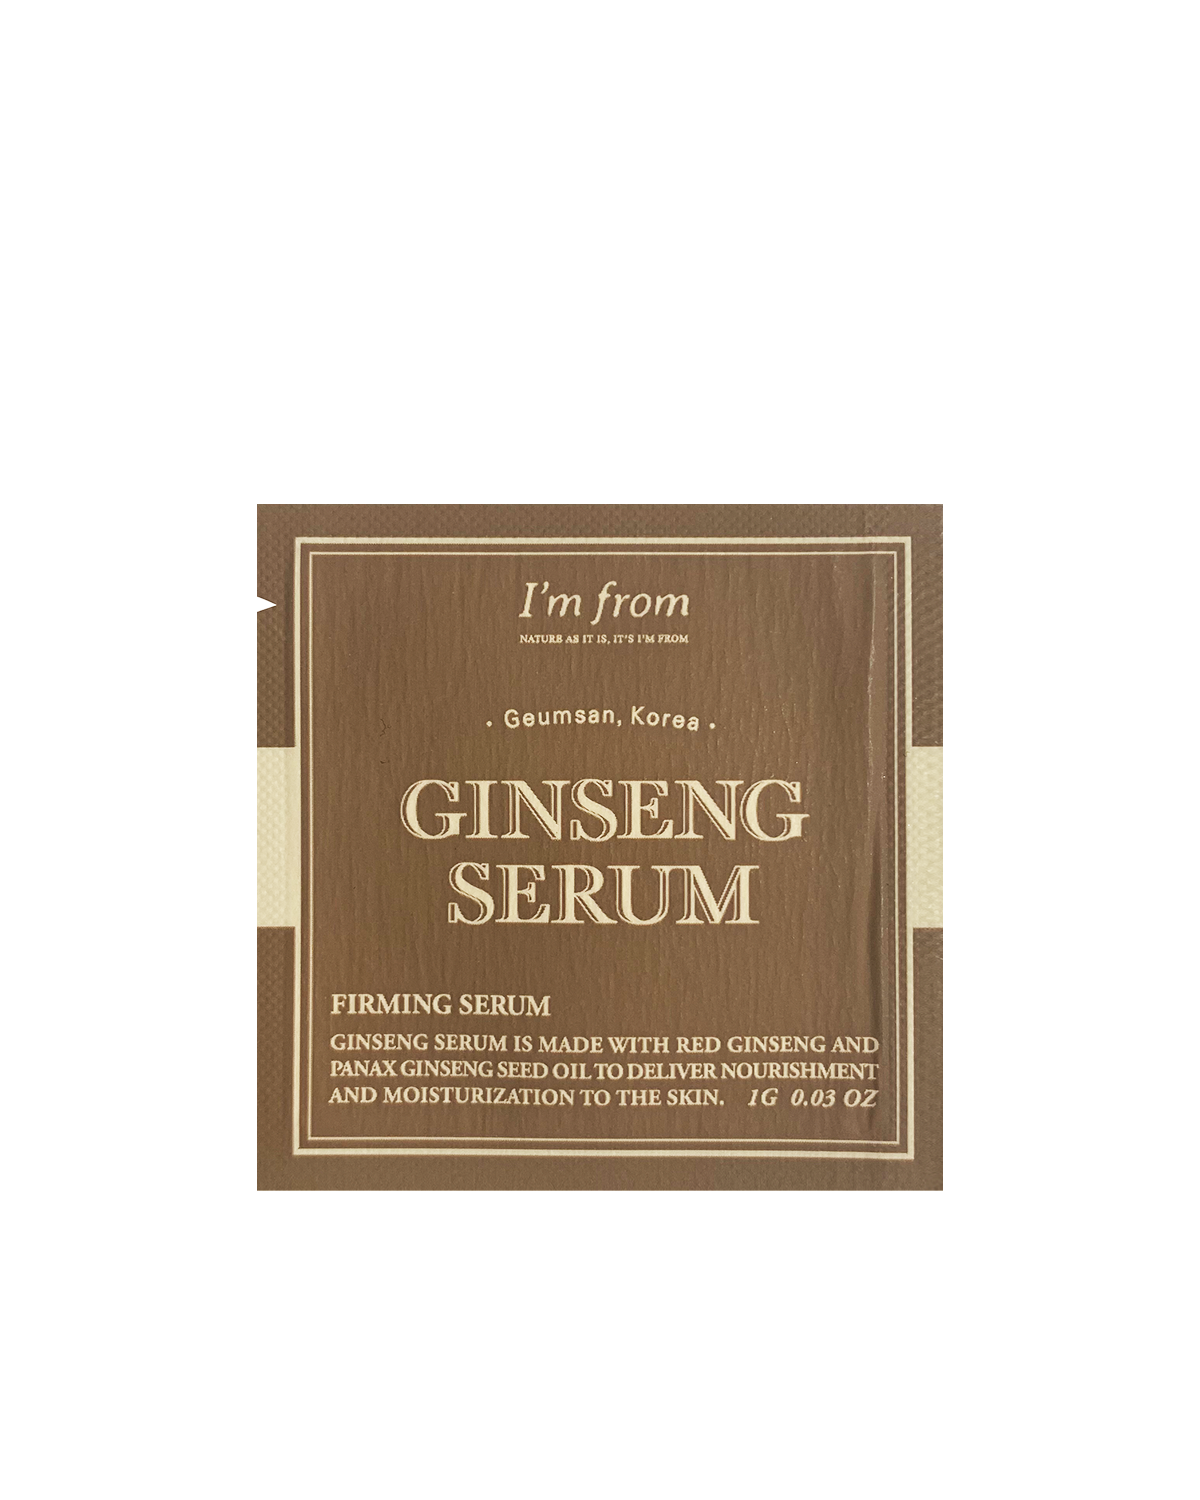 I'M FROM Ginseng Serum Sample 1g